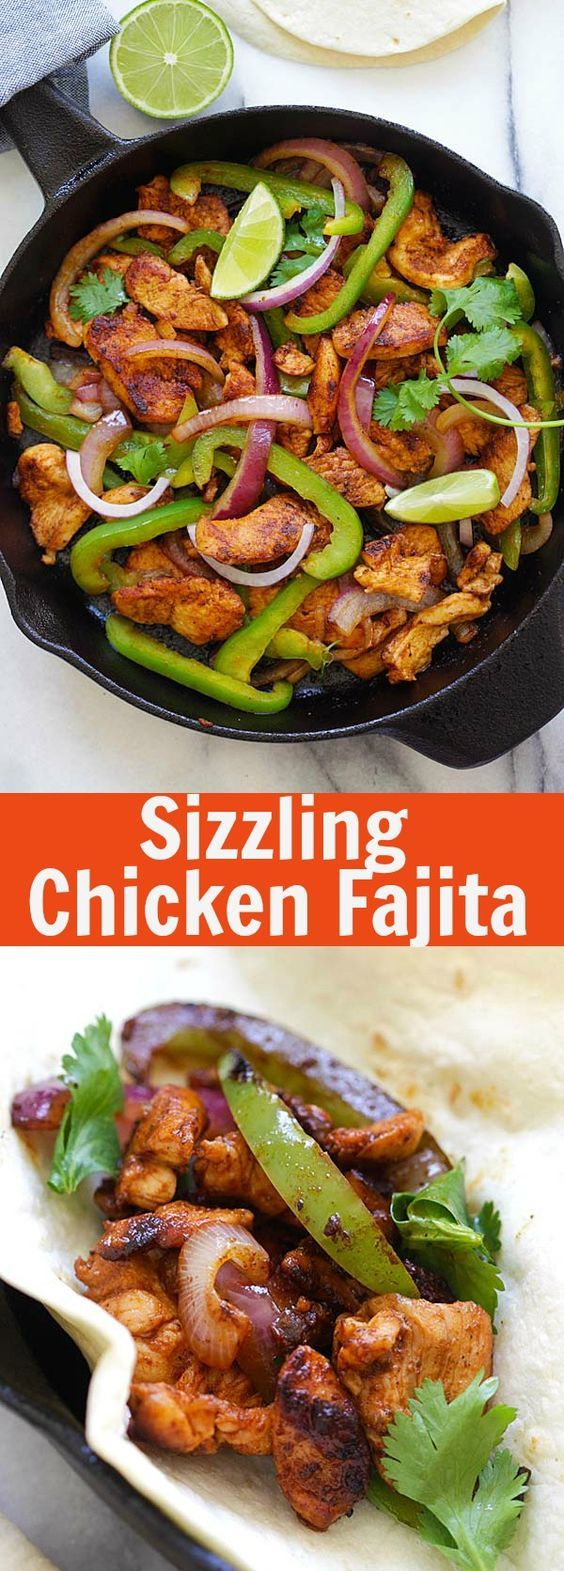 Pin by chandra patil on sizzling pinterest mary forumfinder Images